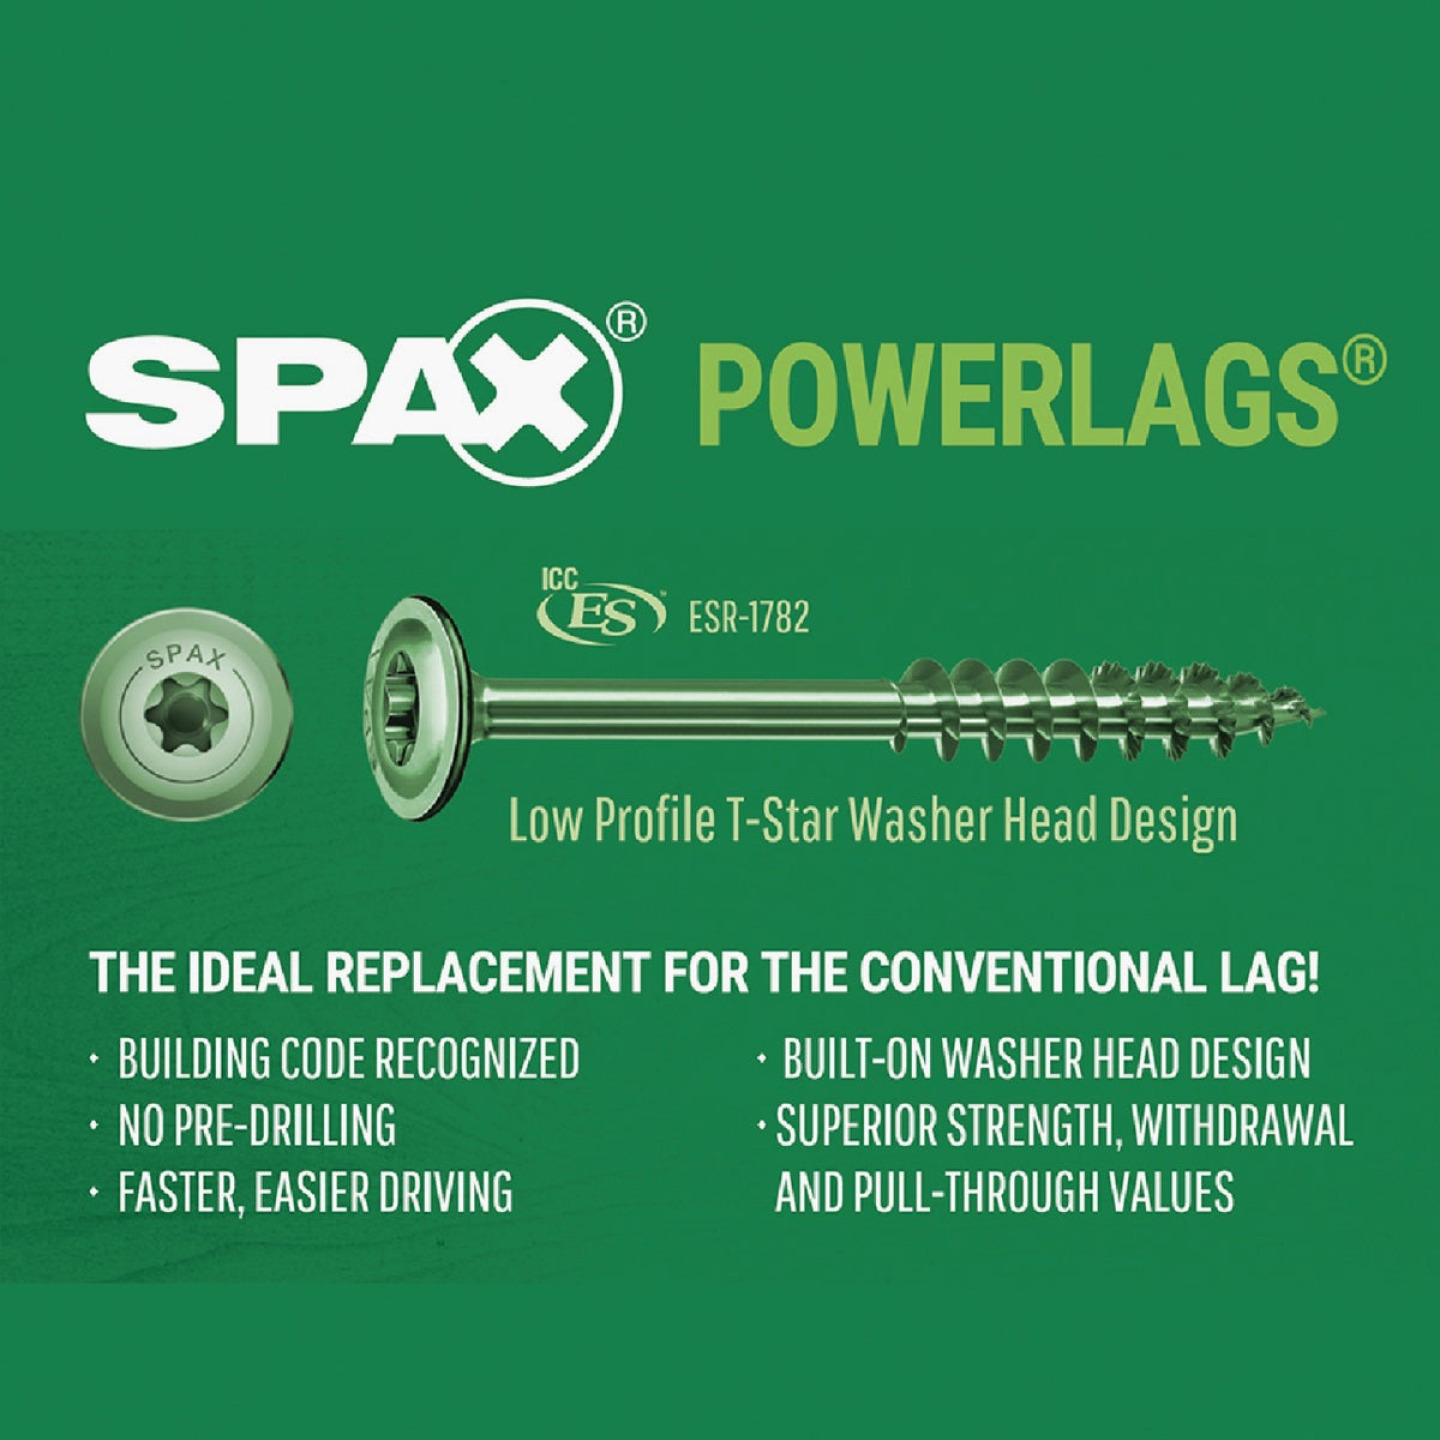 Spax PowerLags 5/16 In. x 6 In. Washer Head Exterior Structure Screw (12 Ct.) Image 4